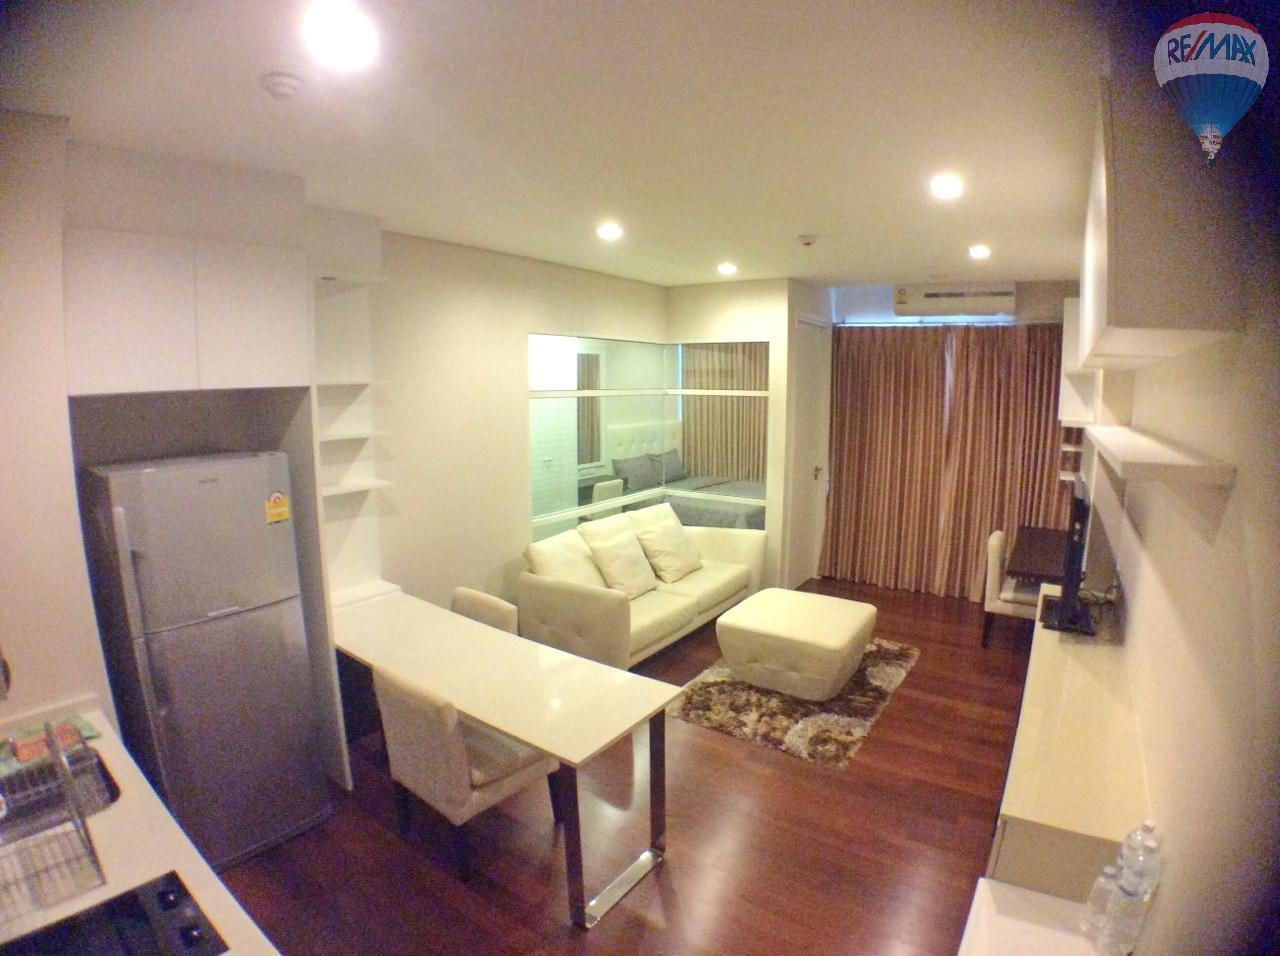 RE/MAX BestLife Agency's Ivy Thonglor 1 bedroom 1 bathroom condo for rent Thonglor BTS 3